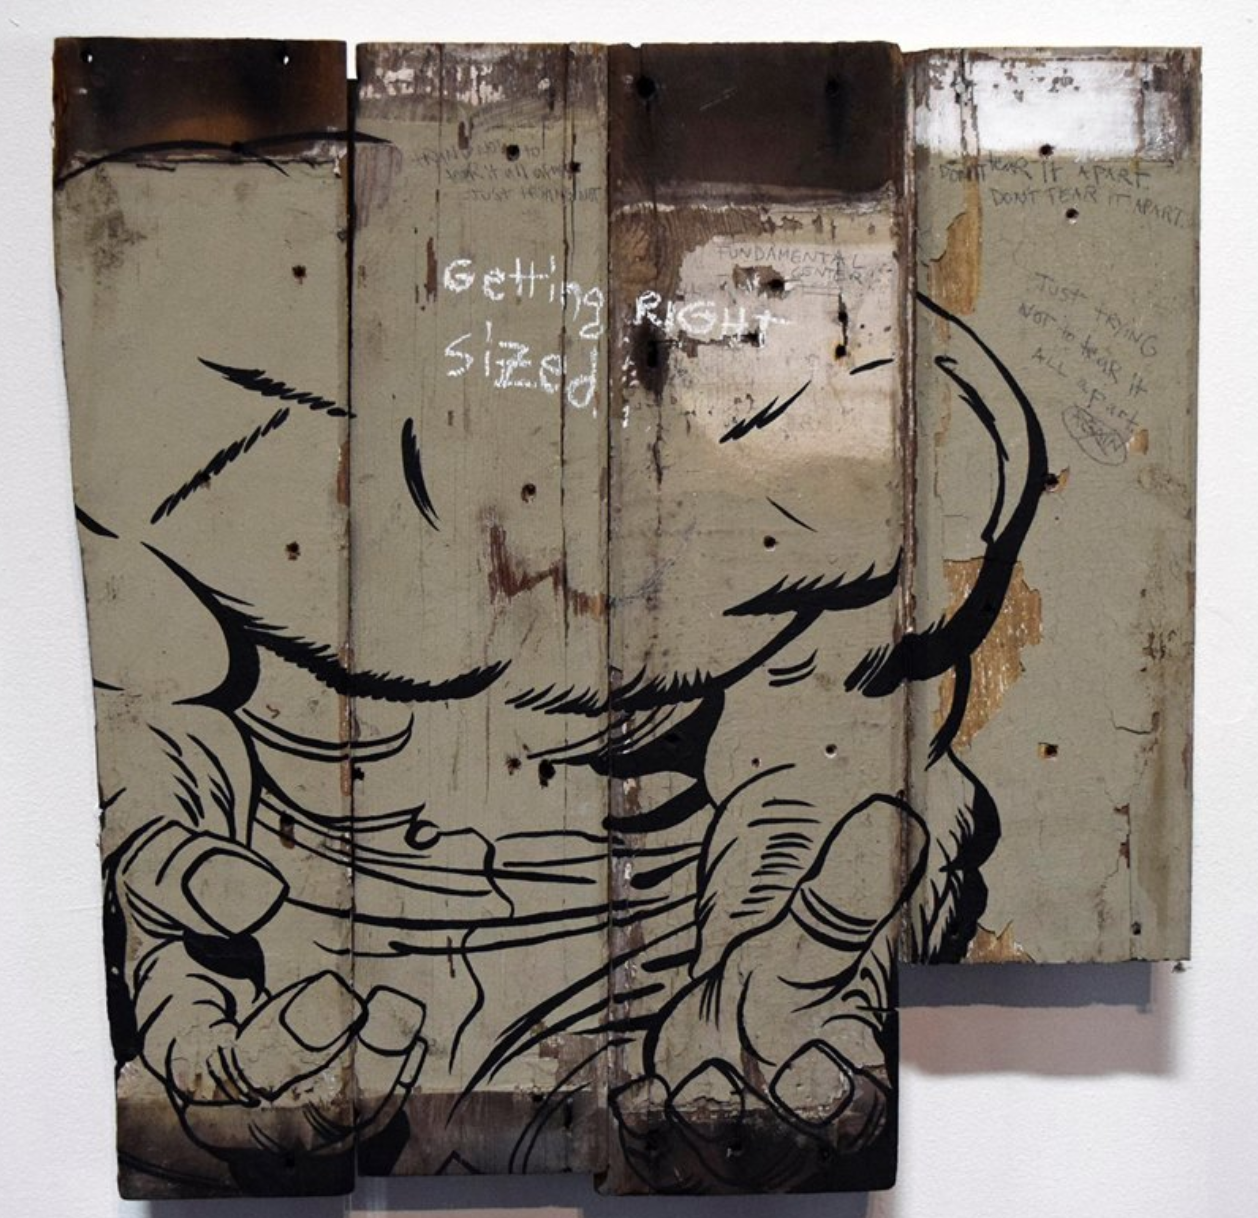 "John Felix Arnold III Don't Go Hulk"" Acrylic Lacquer, Graphite, and Pastel on Found Wood Fencing Assemblage 30 x 30"""